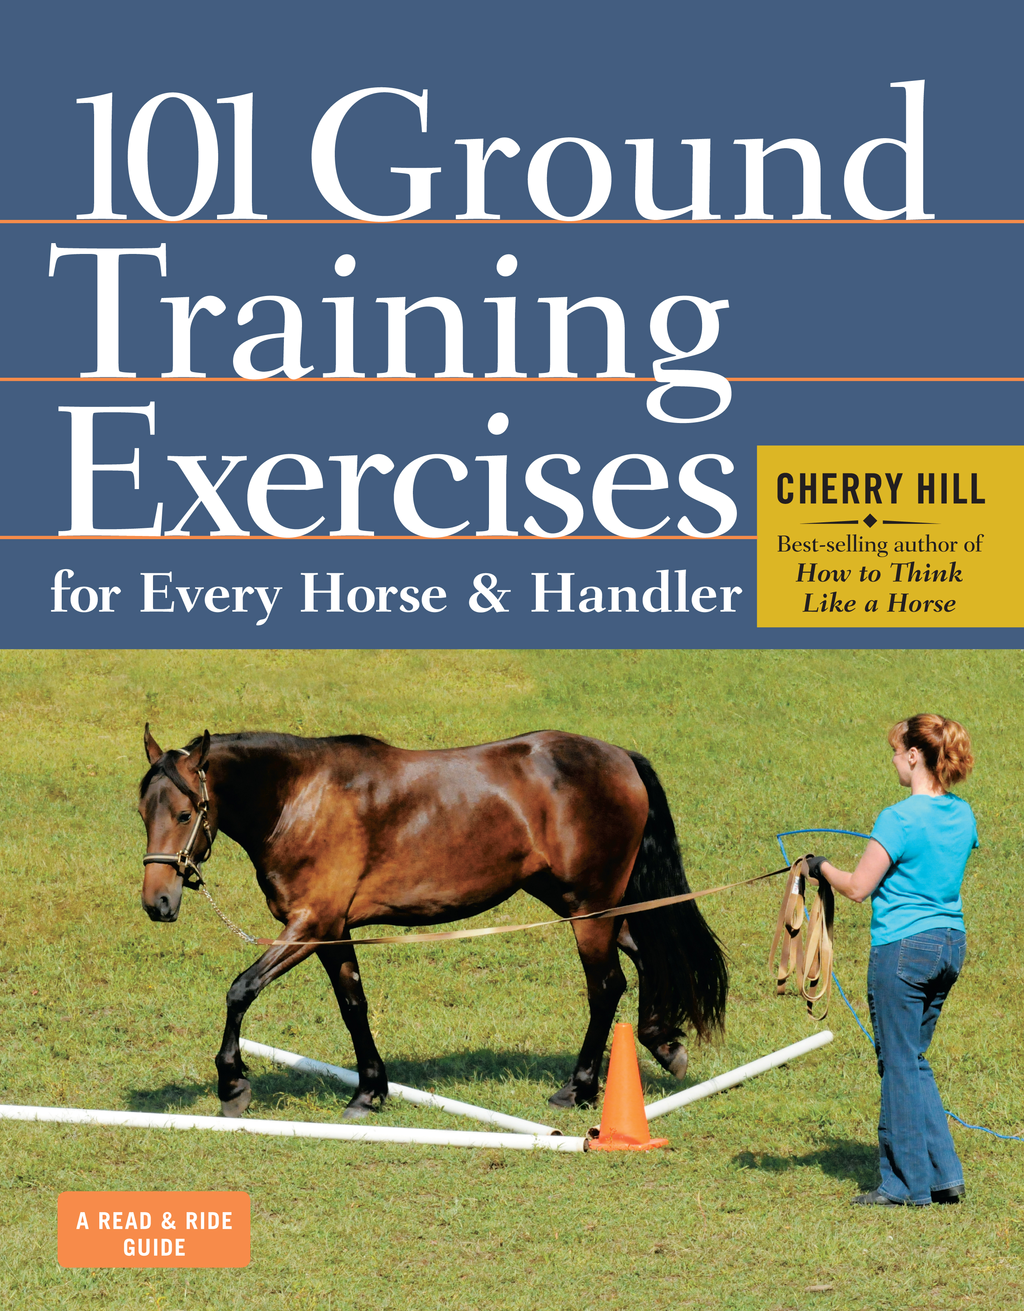 101 Ground Training Exercises for Every Horse & Handler